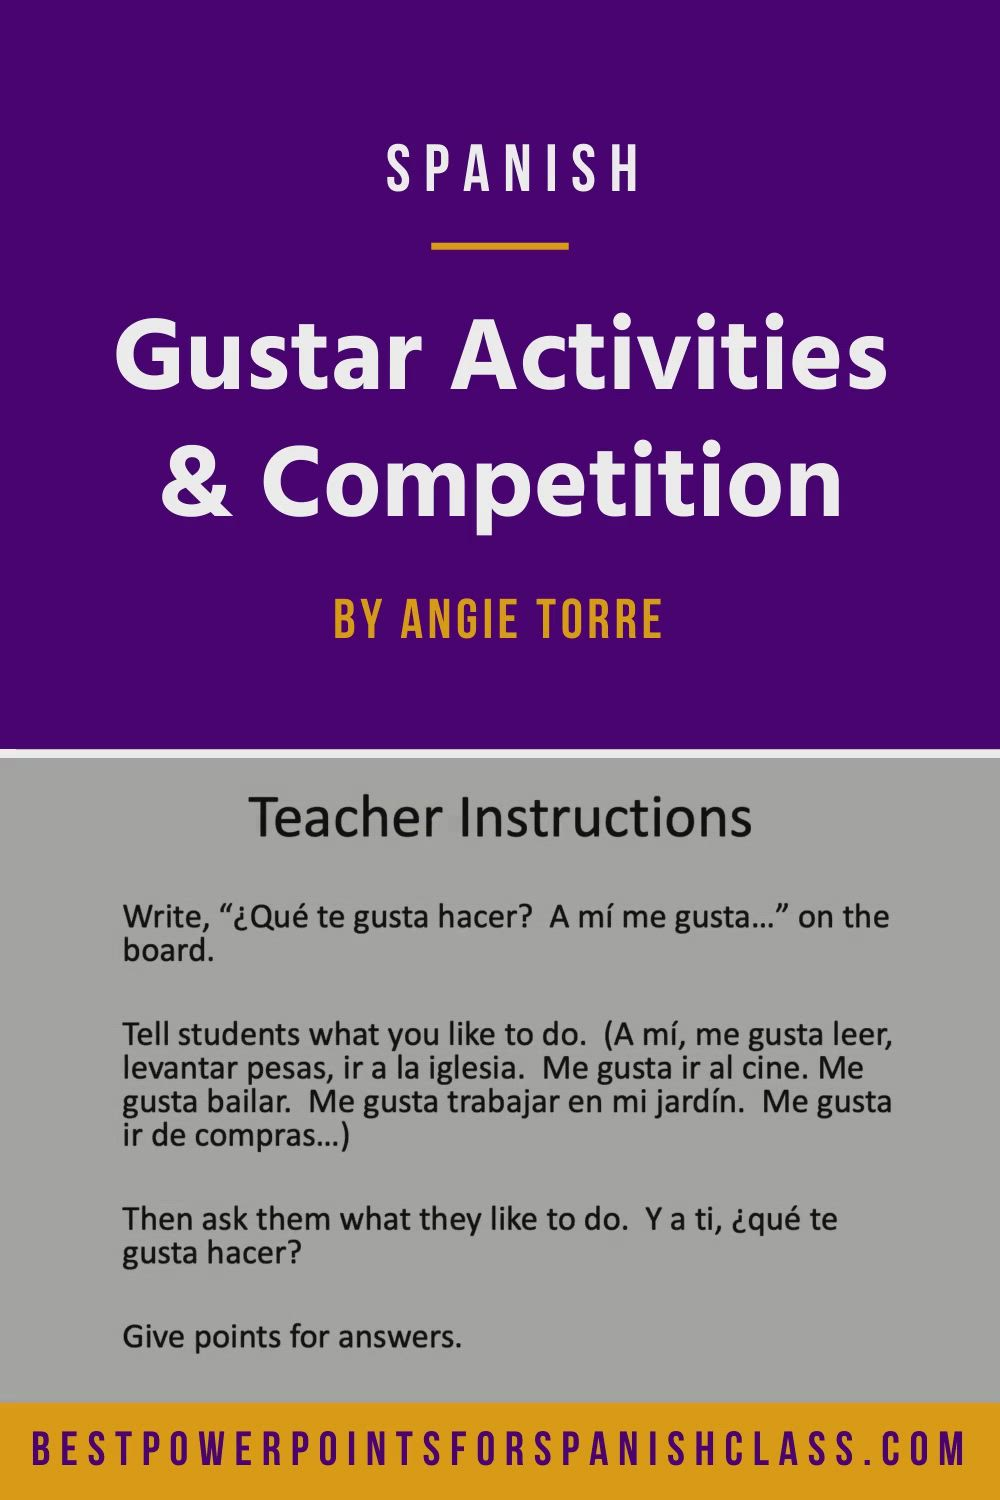 Spanish Gustar Practice Activities And Competition Distance Learning Video Distance Learning Instructional Resources Spanish Curriculum [ 1500 x 1000 Pixel ]